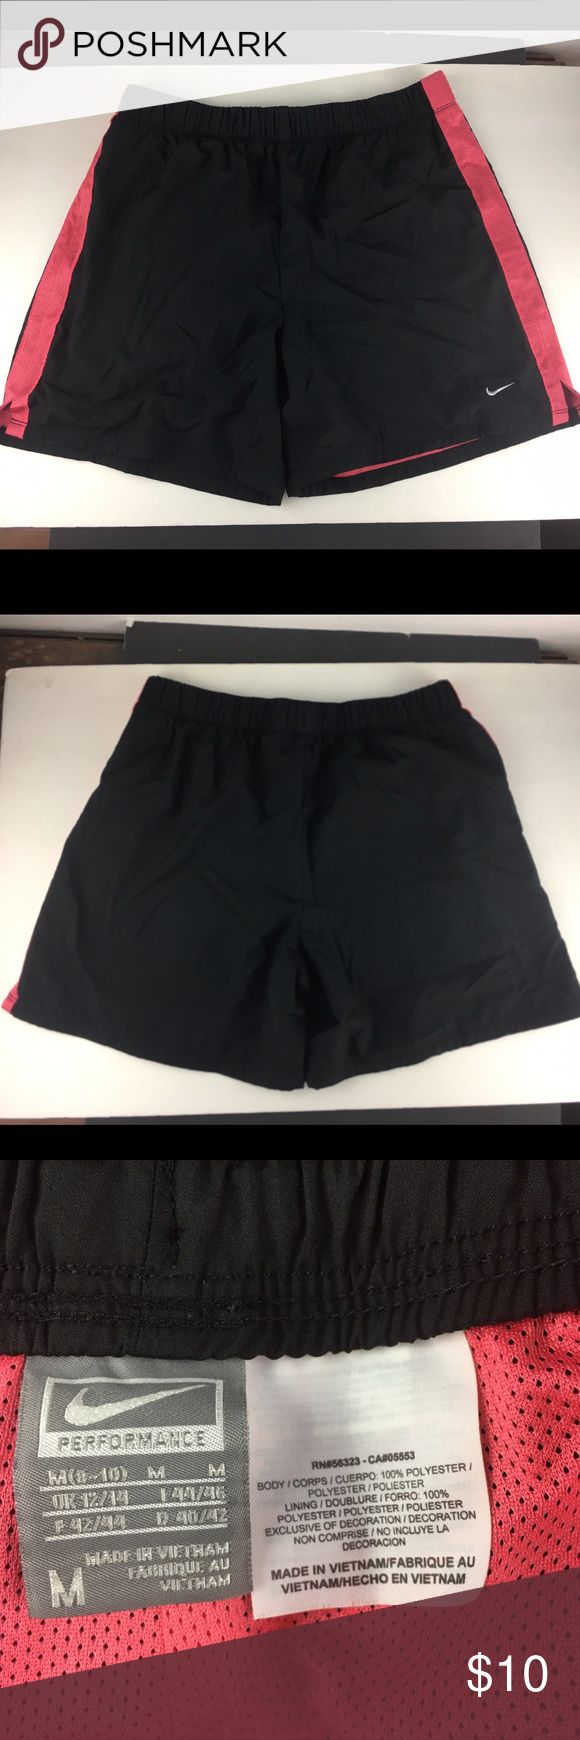 Nike Athletic Black and Pink Shorts Size M Selling one pair of Nike Athletic shorts. The shorts are black with pink mesh stripe and slit on side. Shorts have elastic waist with a drawstring. In good condition. No rips, tears, or stains. Nike Shorts